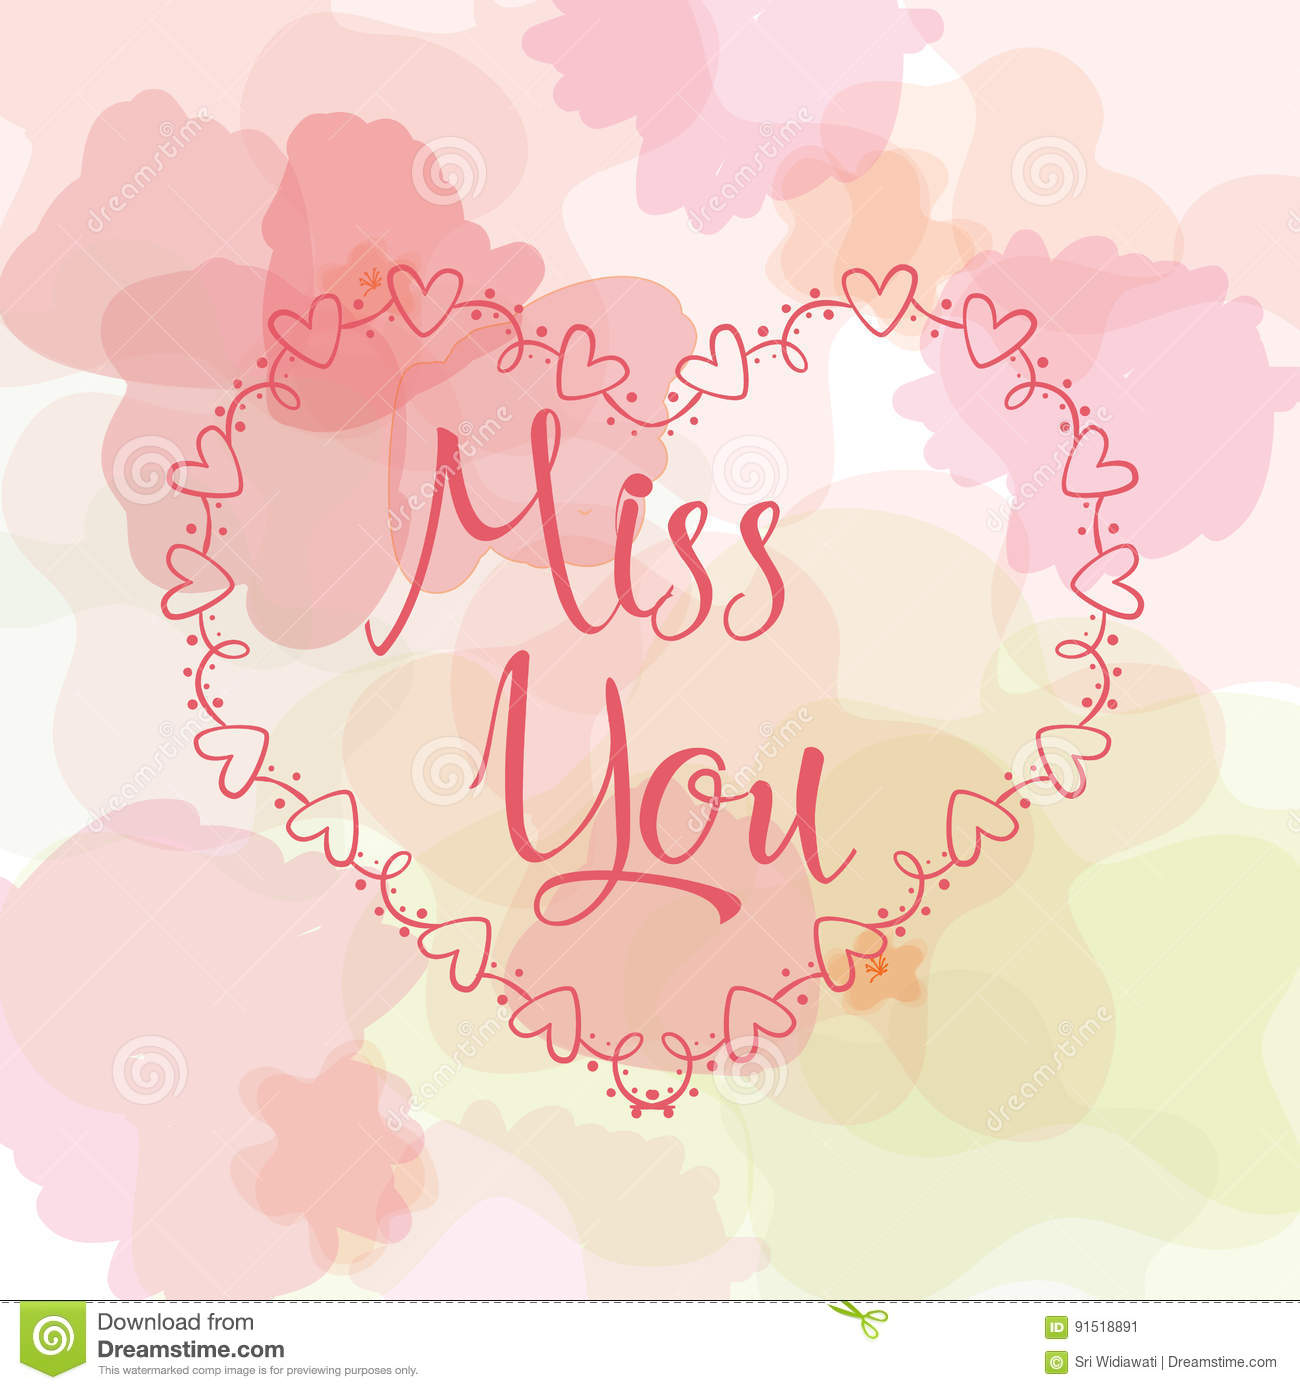 Miss You Inscription Greeting Card With Calligraphy Hand Drawn